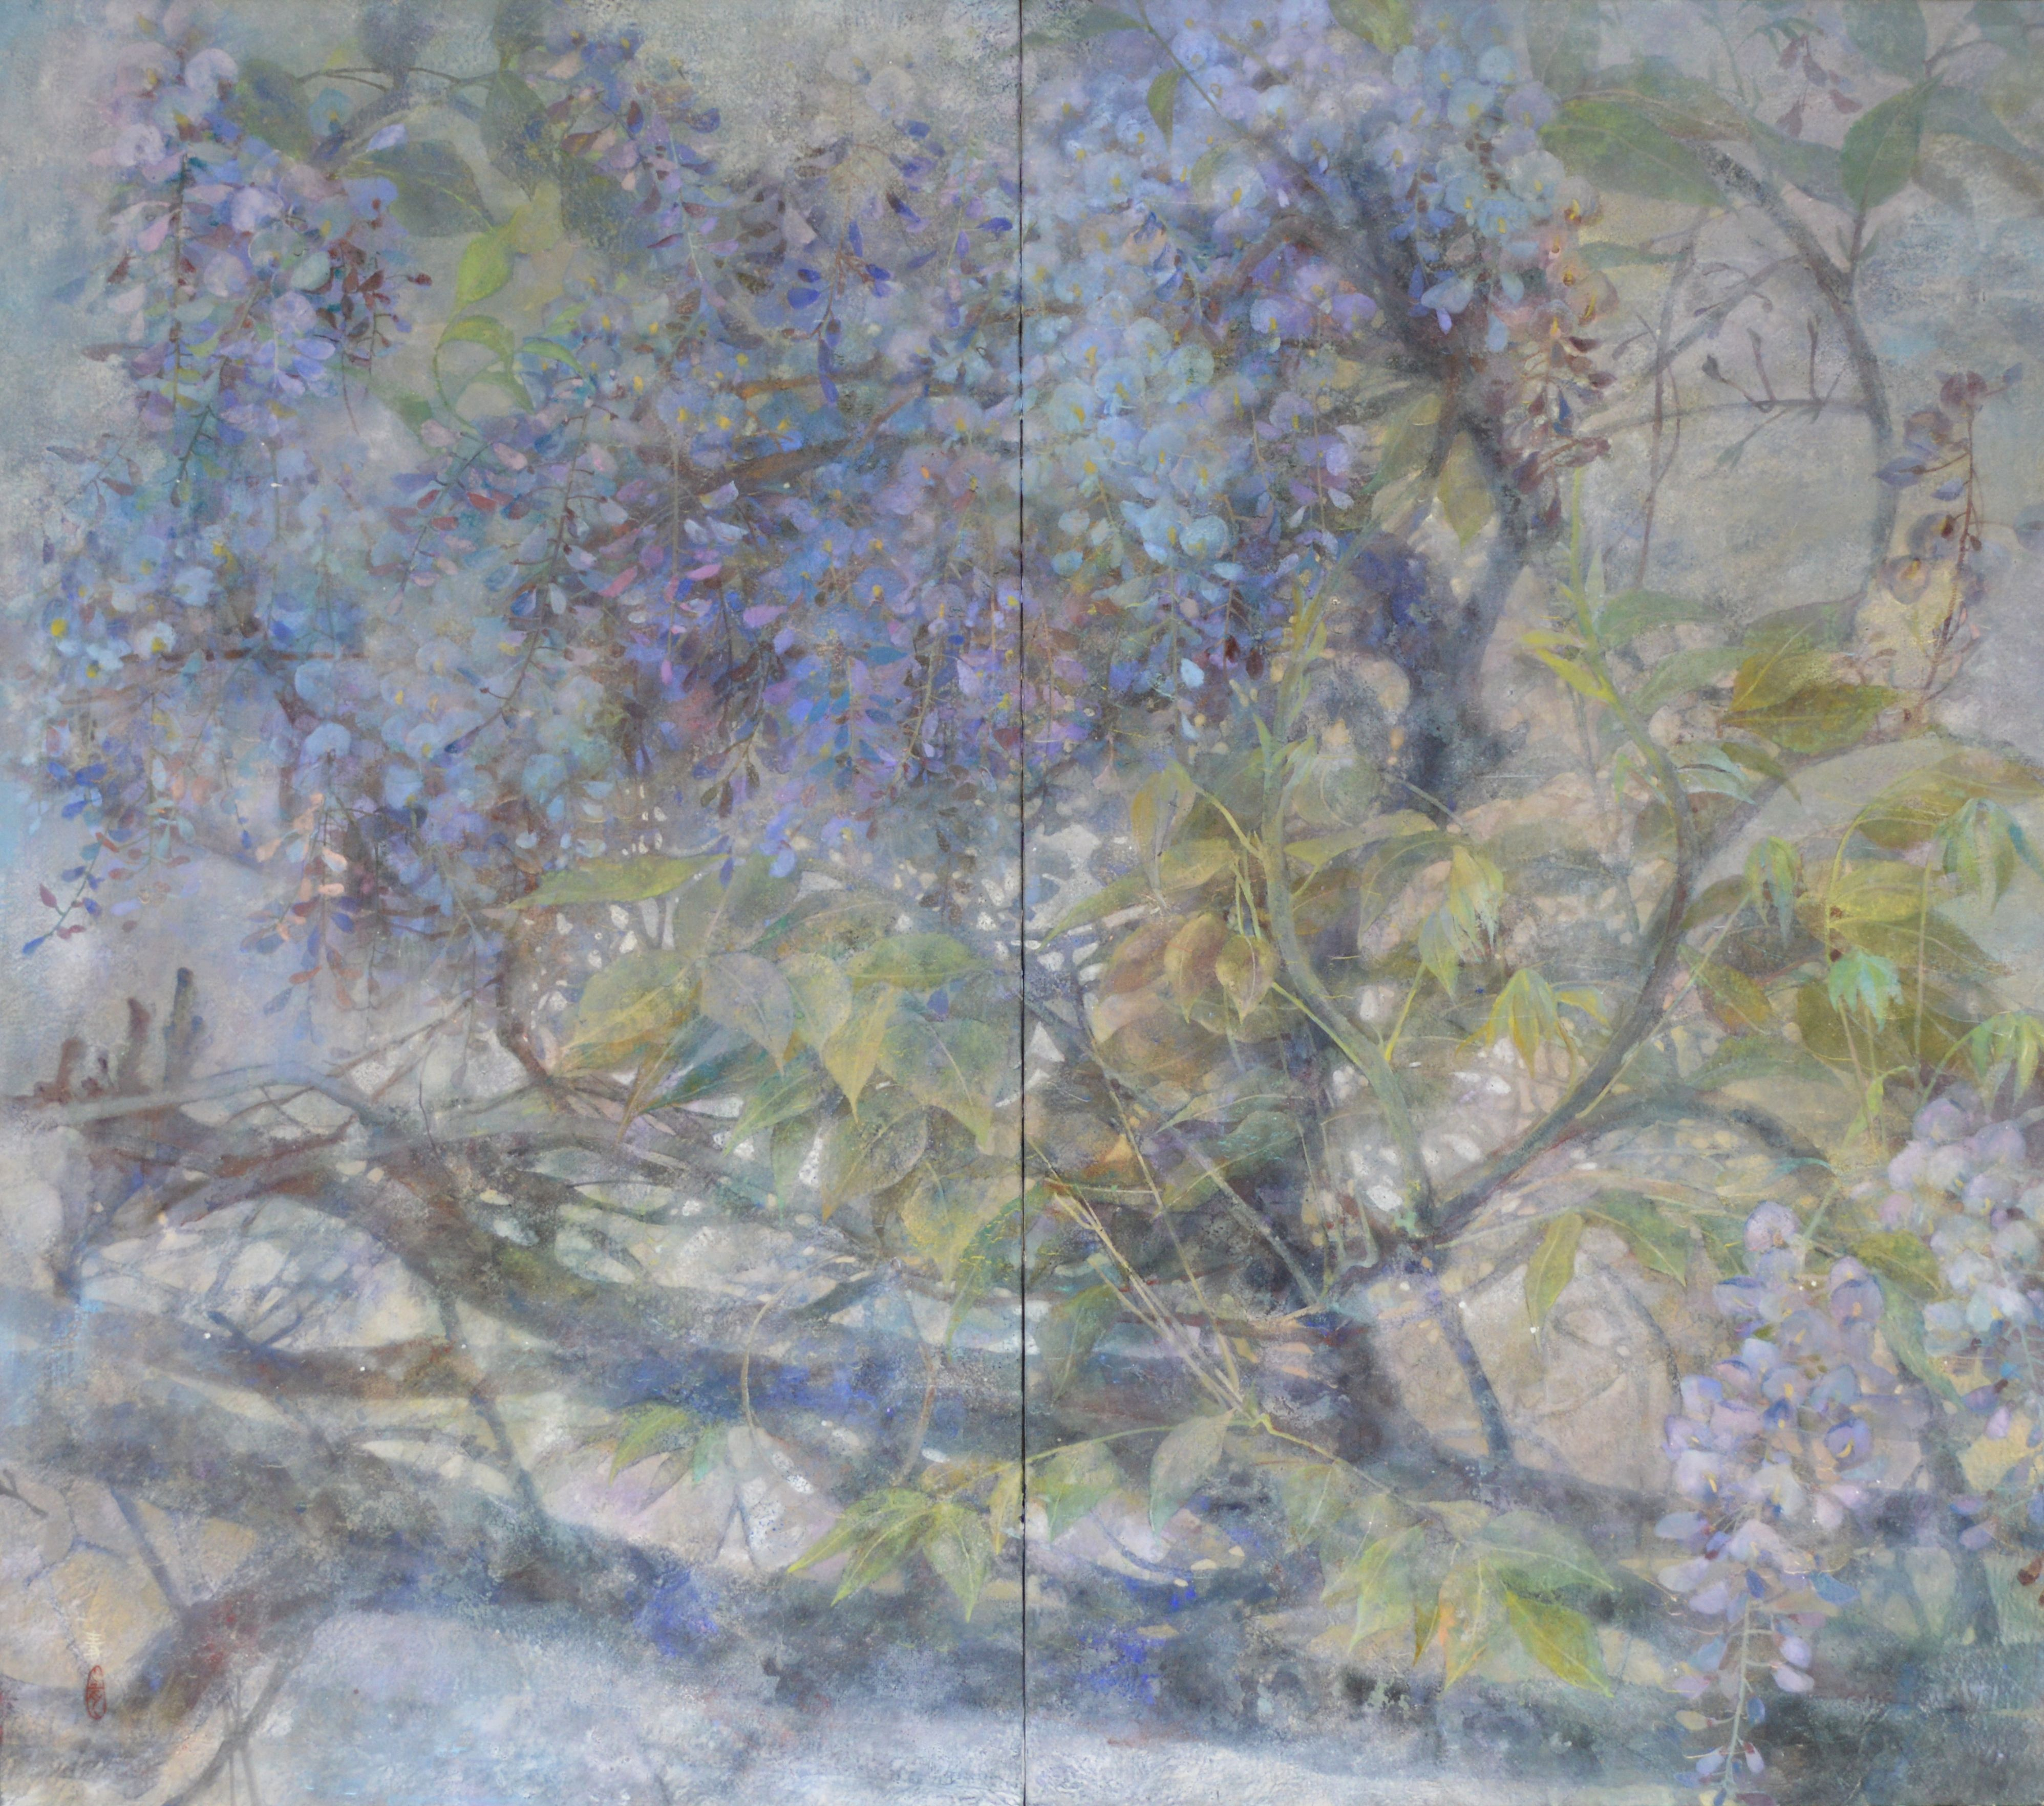 Le Temps Ecoule Japanese Painting Painting New Art